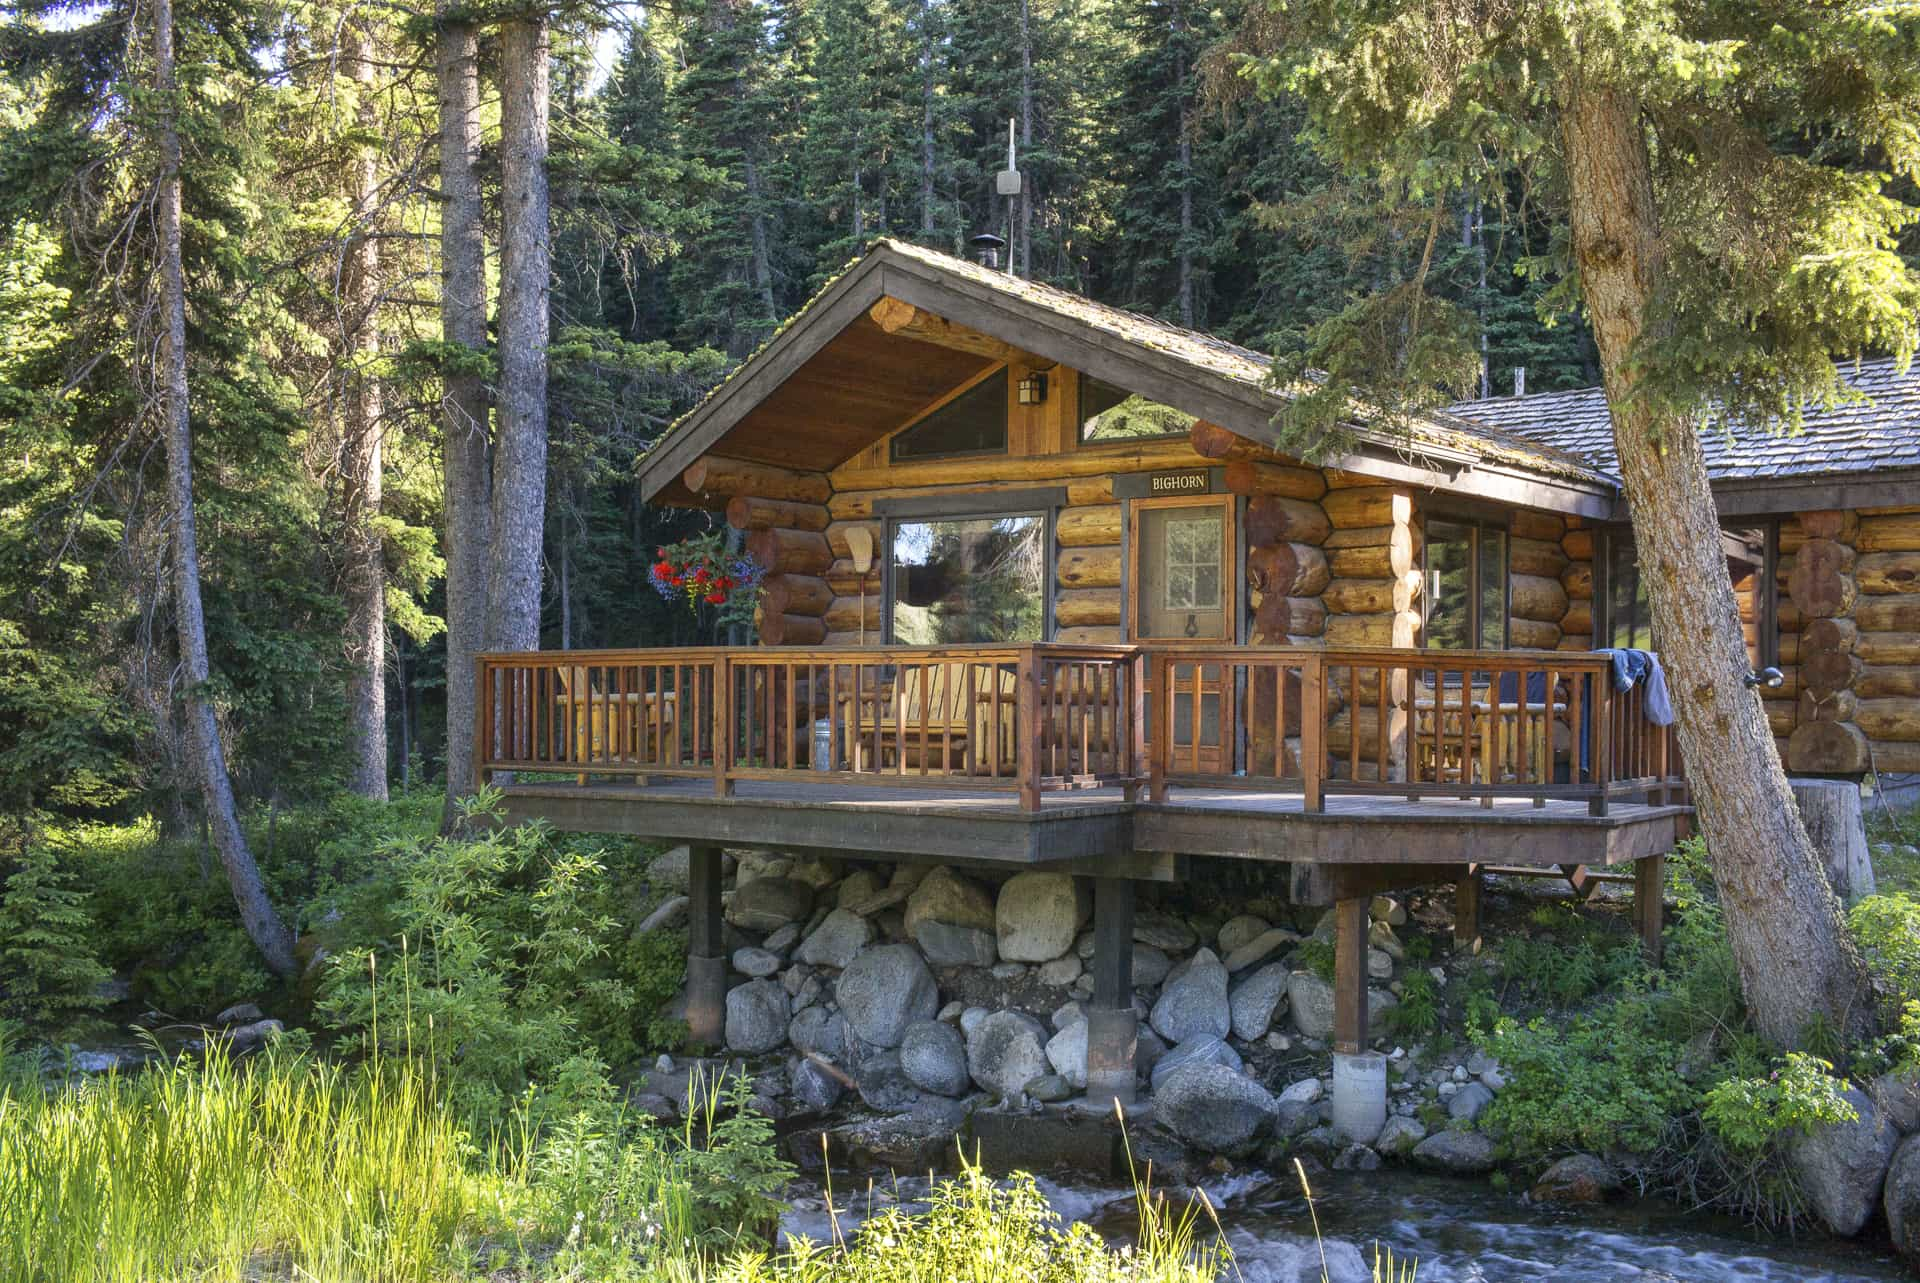 The beautiful Bighorn Cabin in the summer